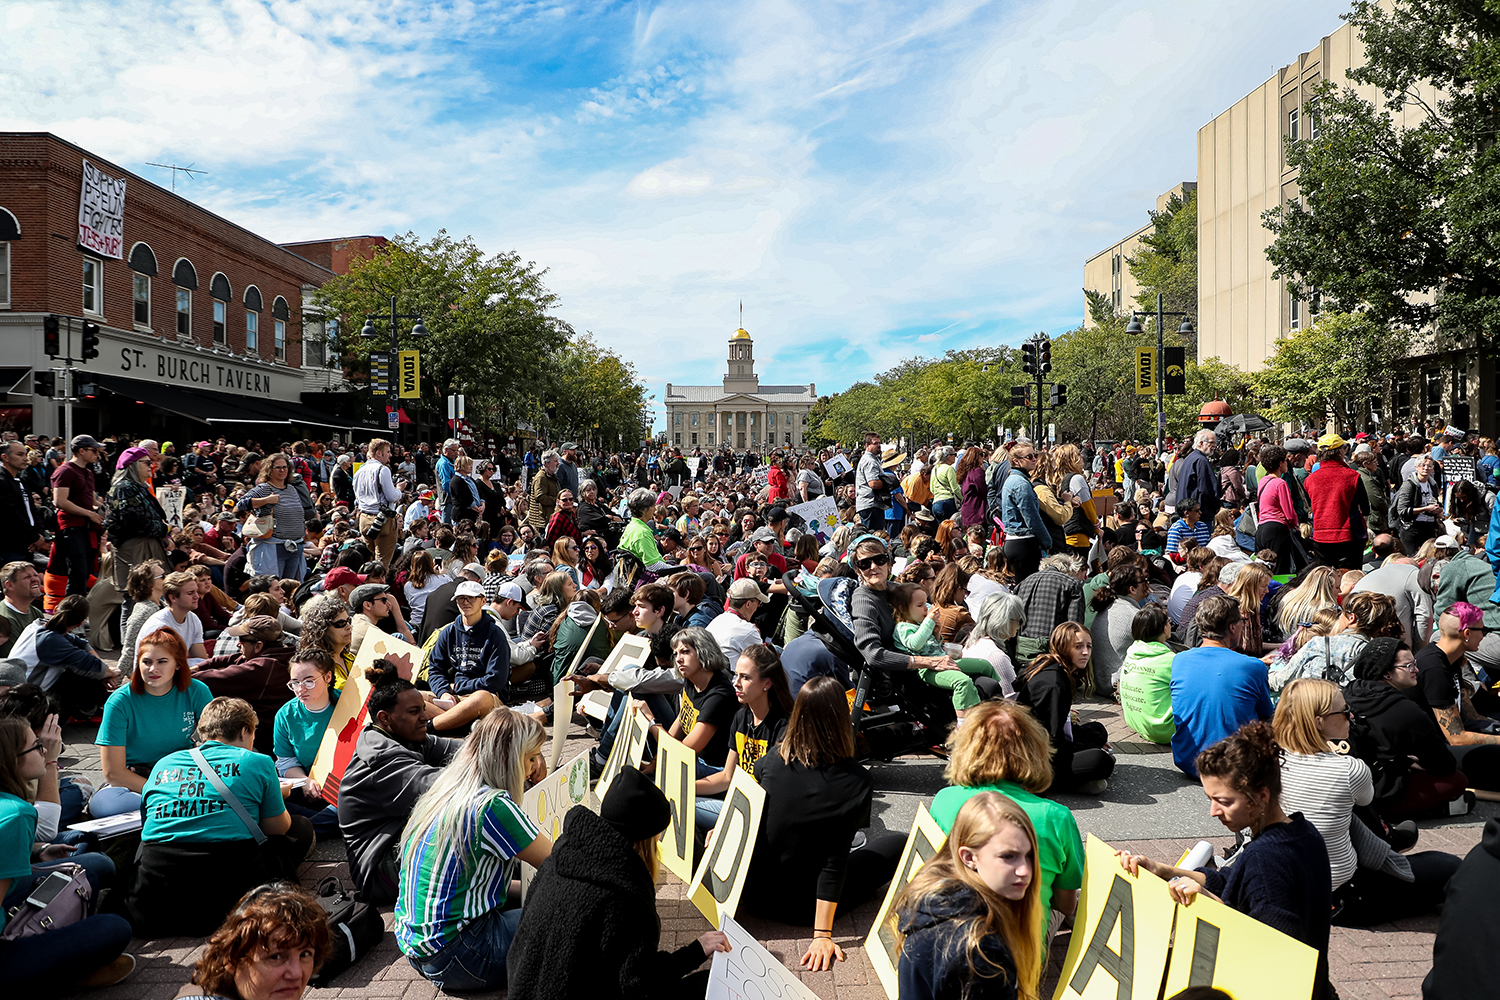 Protesters take part in an 11-minutes sit-down protest during the Iowa City Climate Strike in downtown Iowa City on Friday, Oct. 4, 2019. (David Harmantas/For The Daily Iowan)